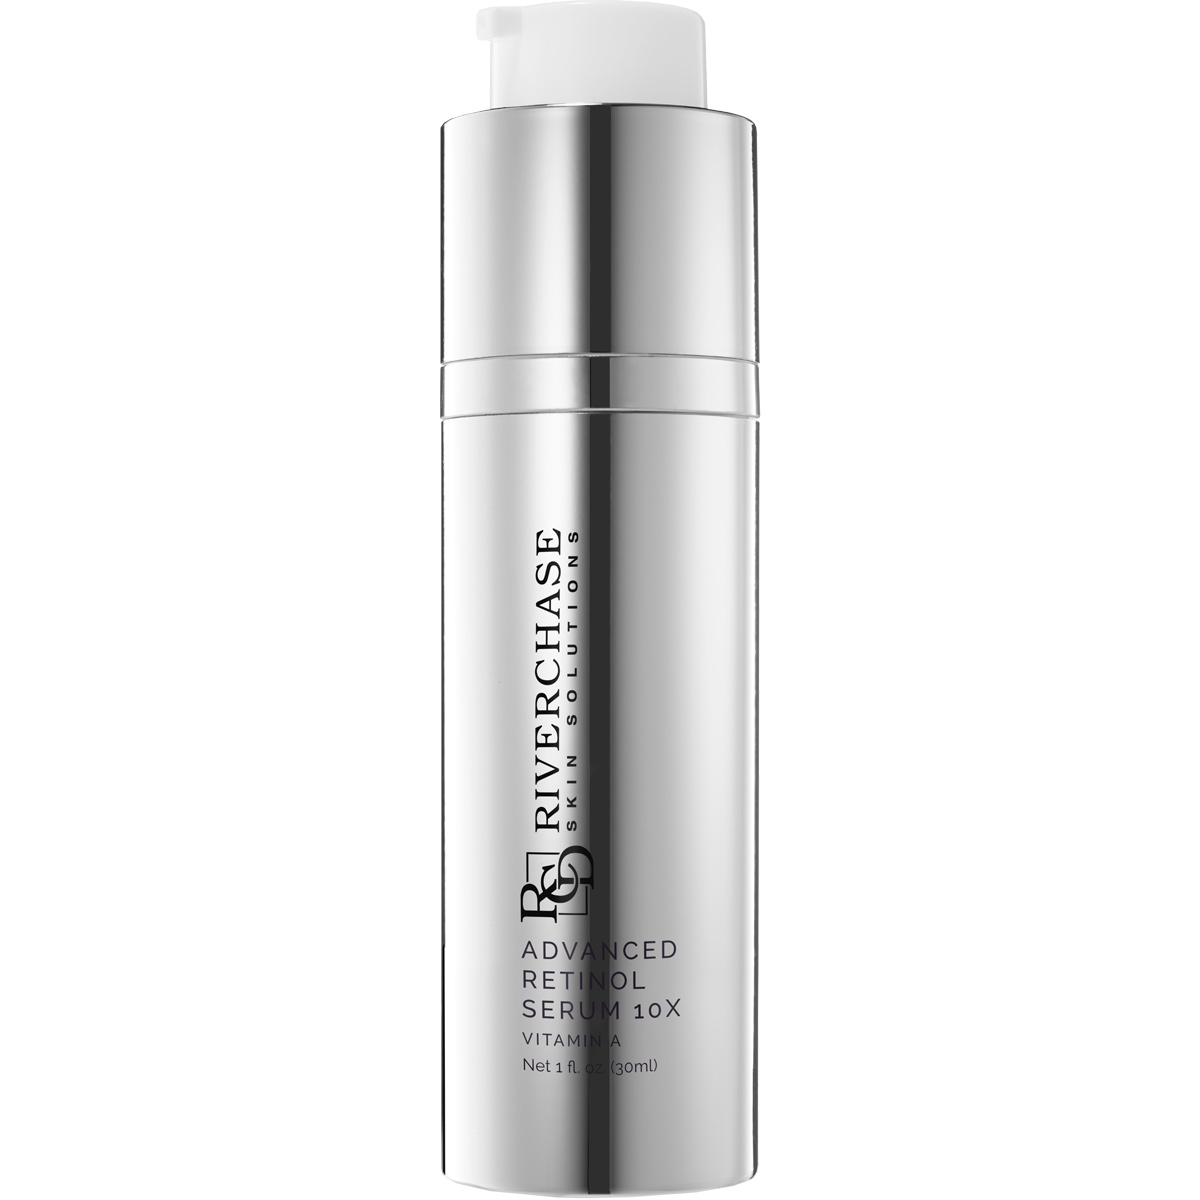 Advanced Retinol Serum 10X